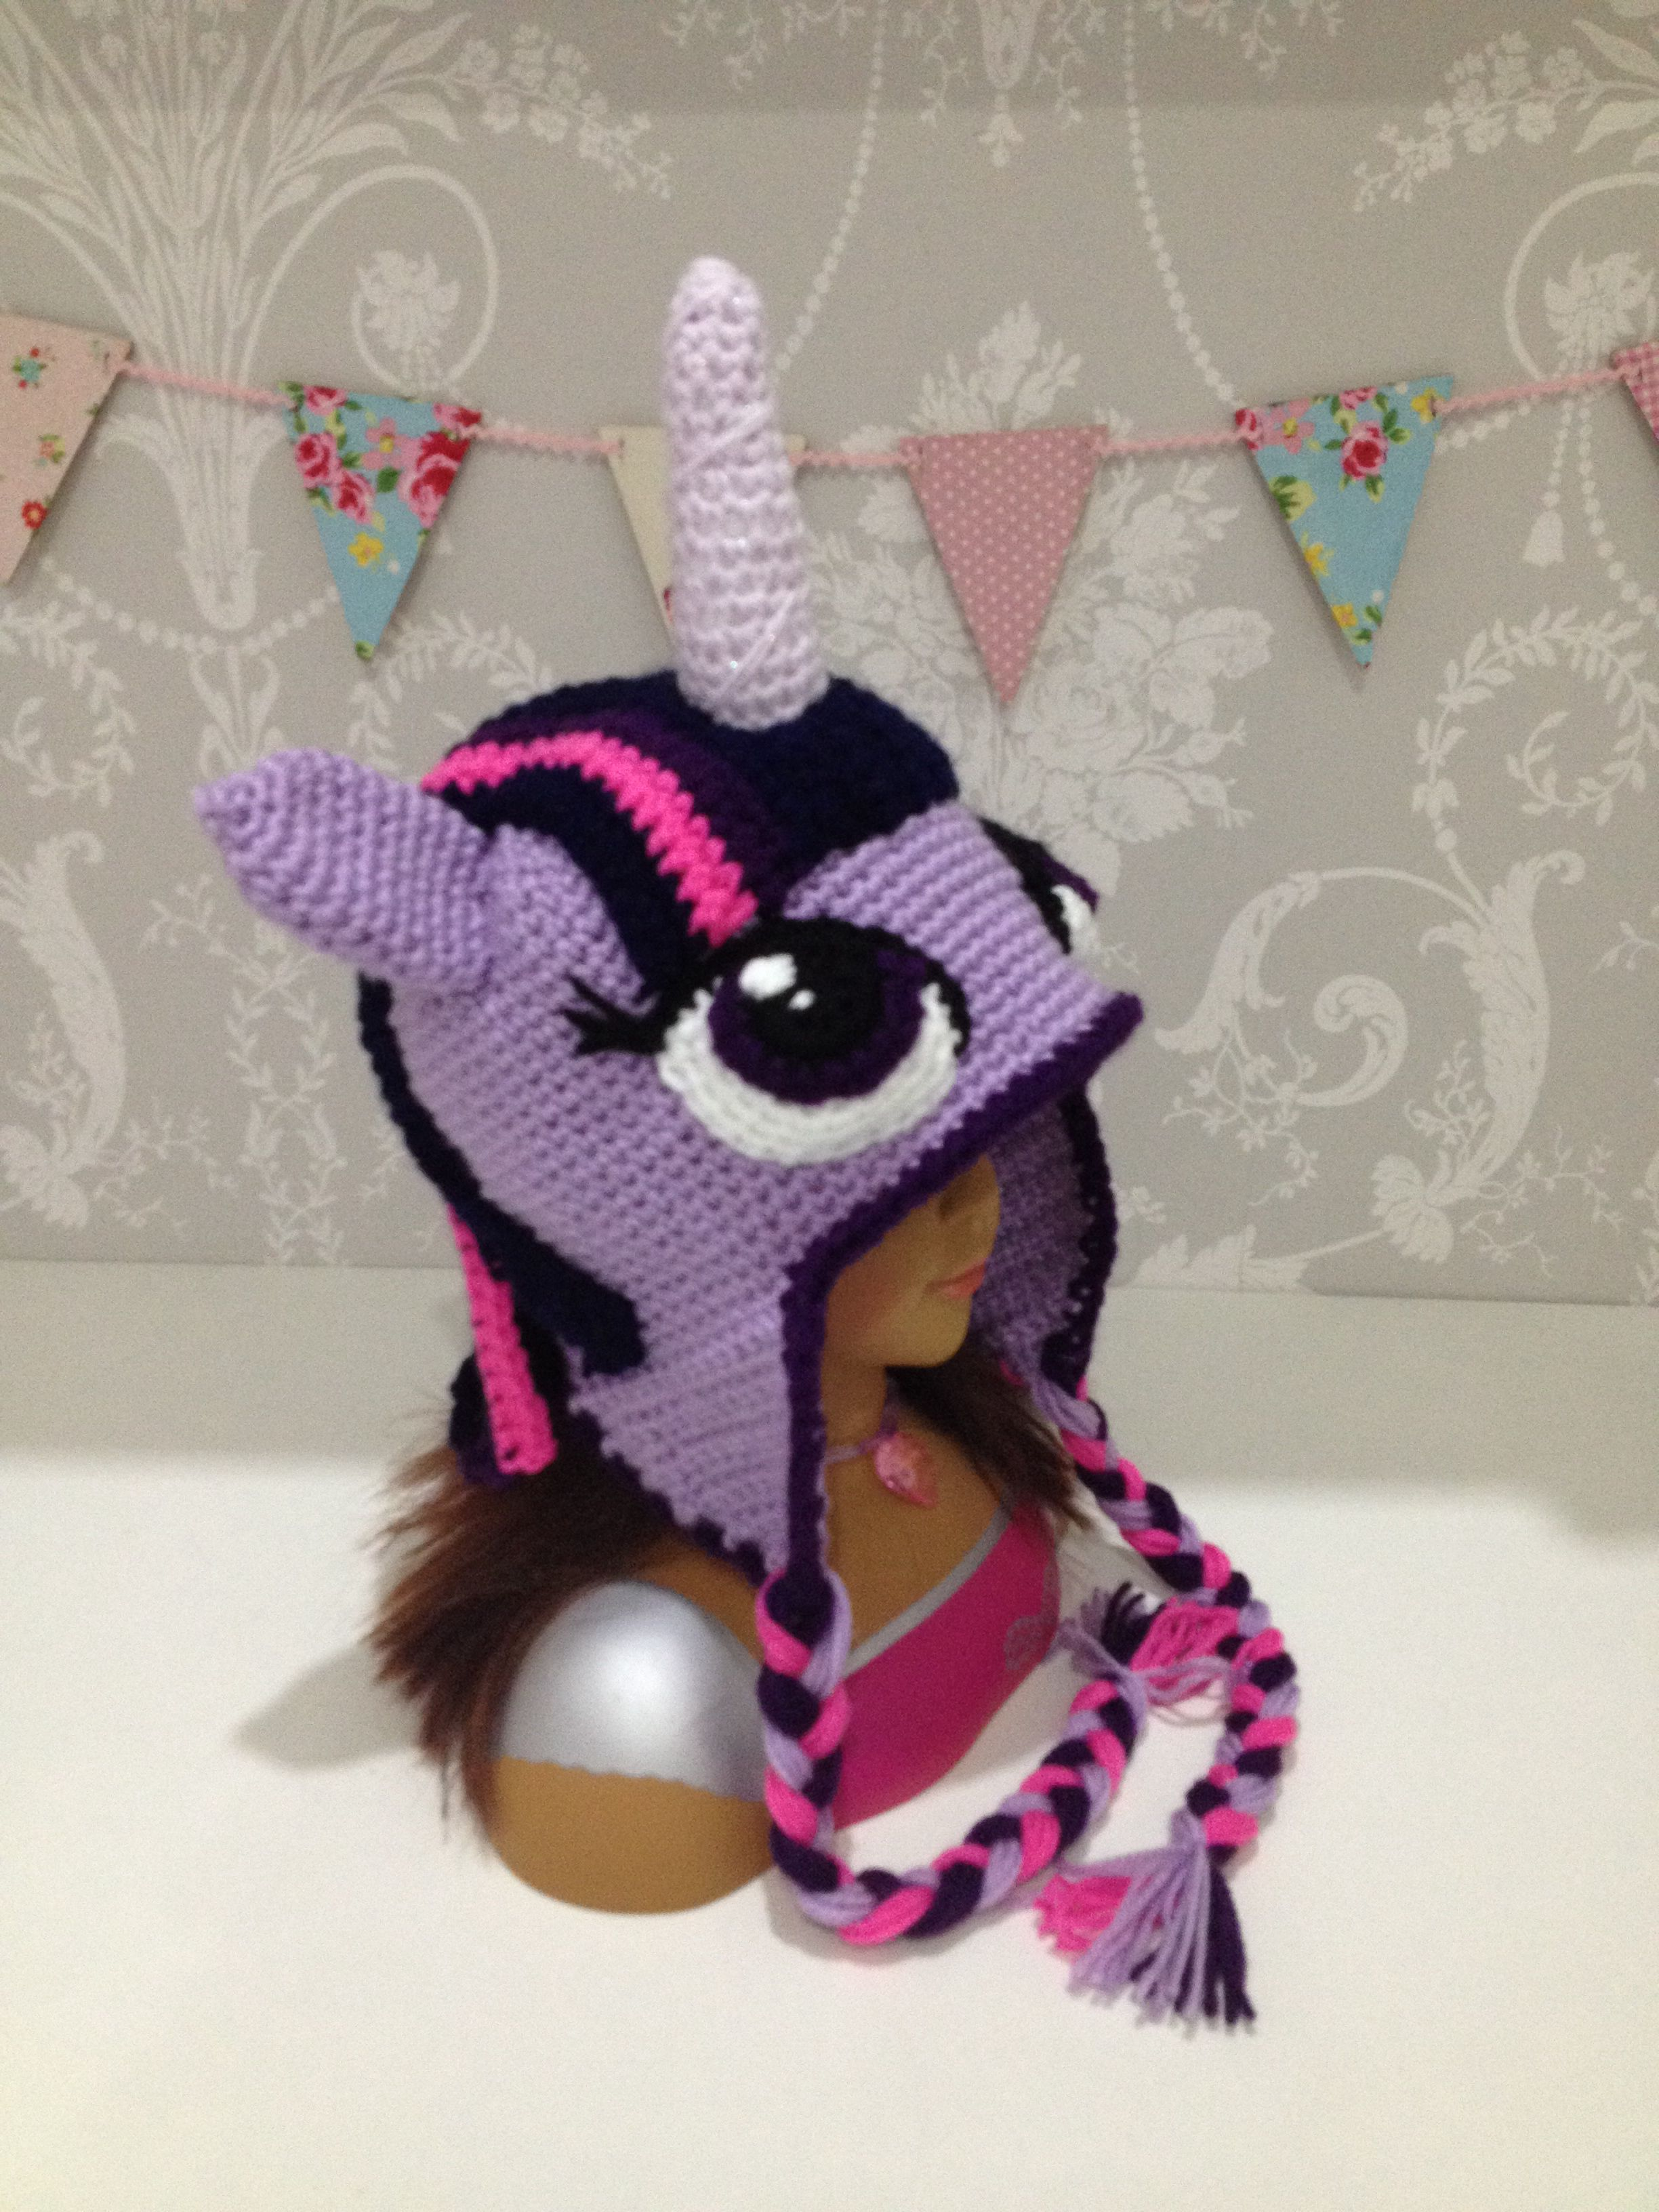 Fabulous hand crocheted twilight sparkle my little pony hat. Would ...